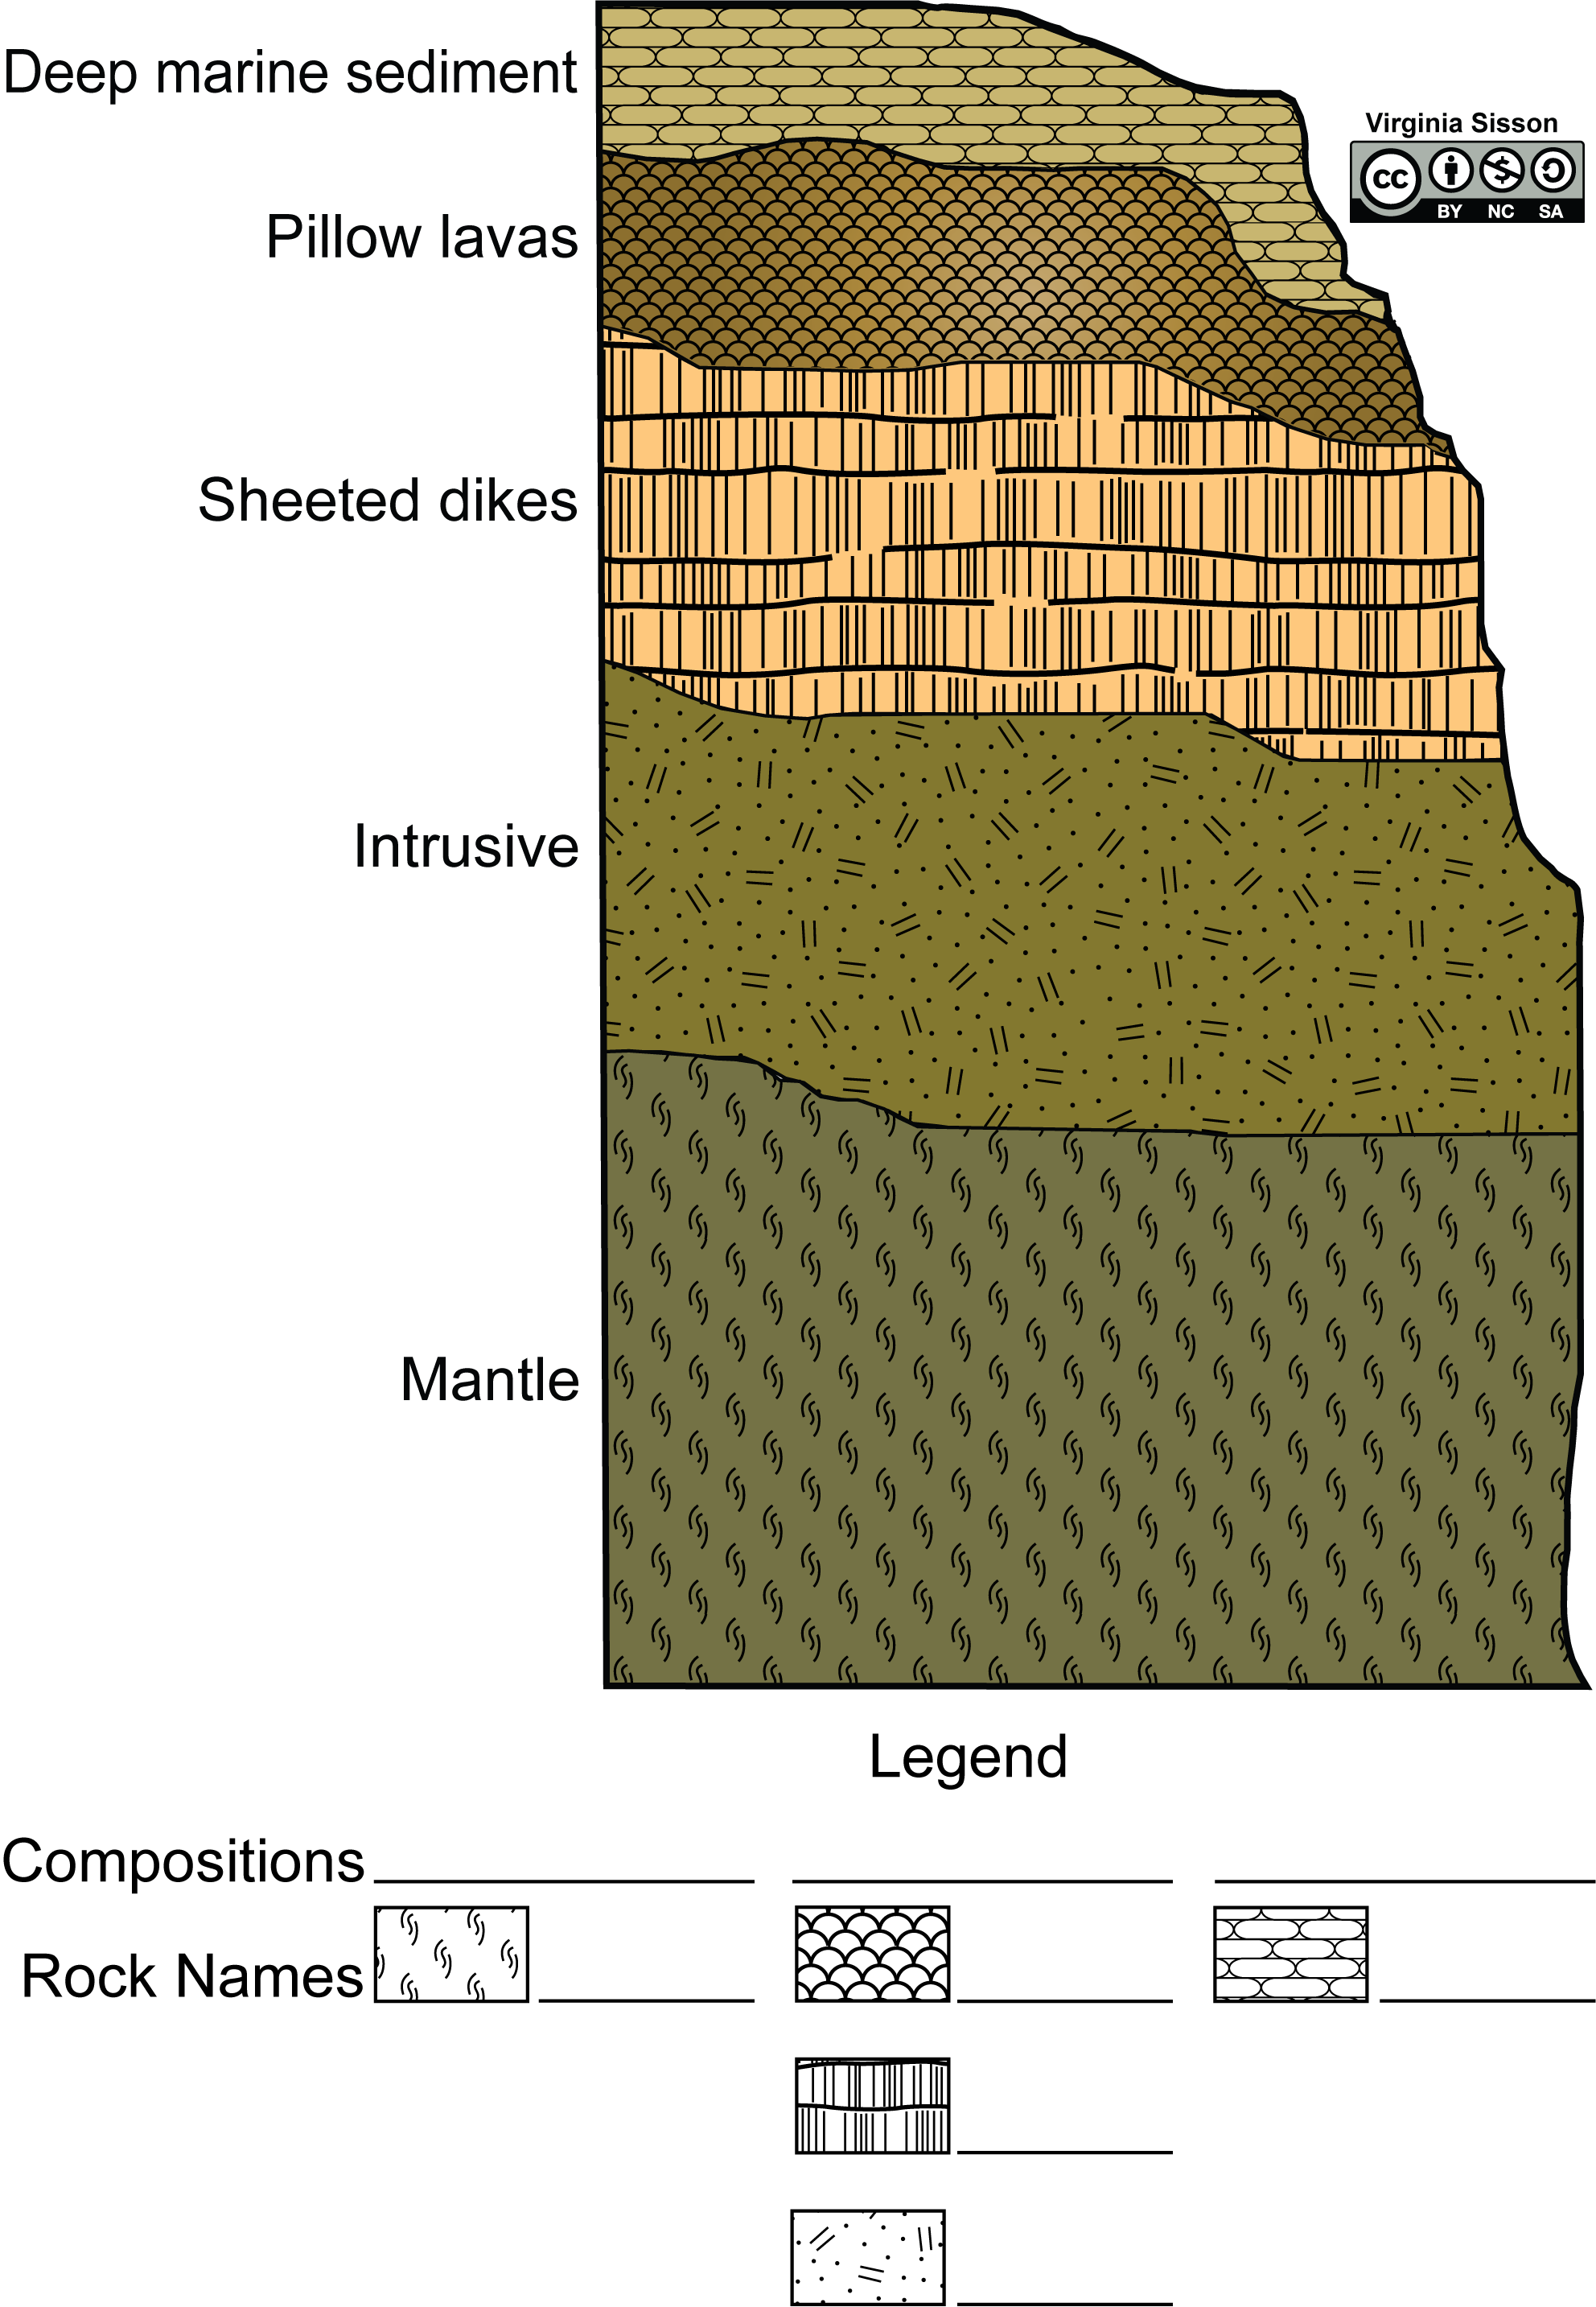 A sequence of igneous and sedimentary rocks found in ophiolite complexes.